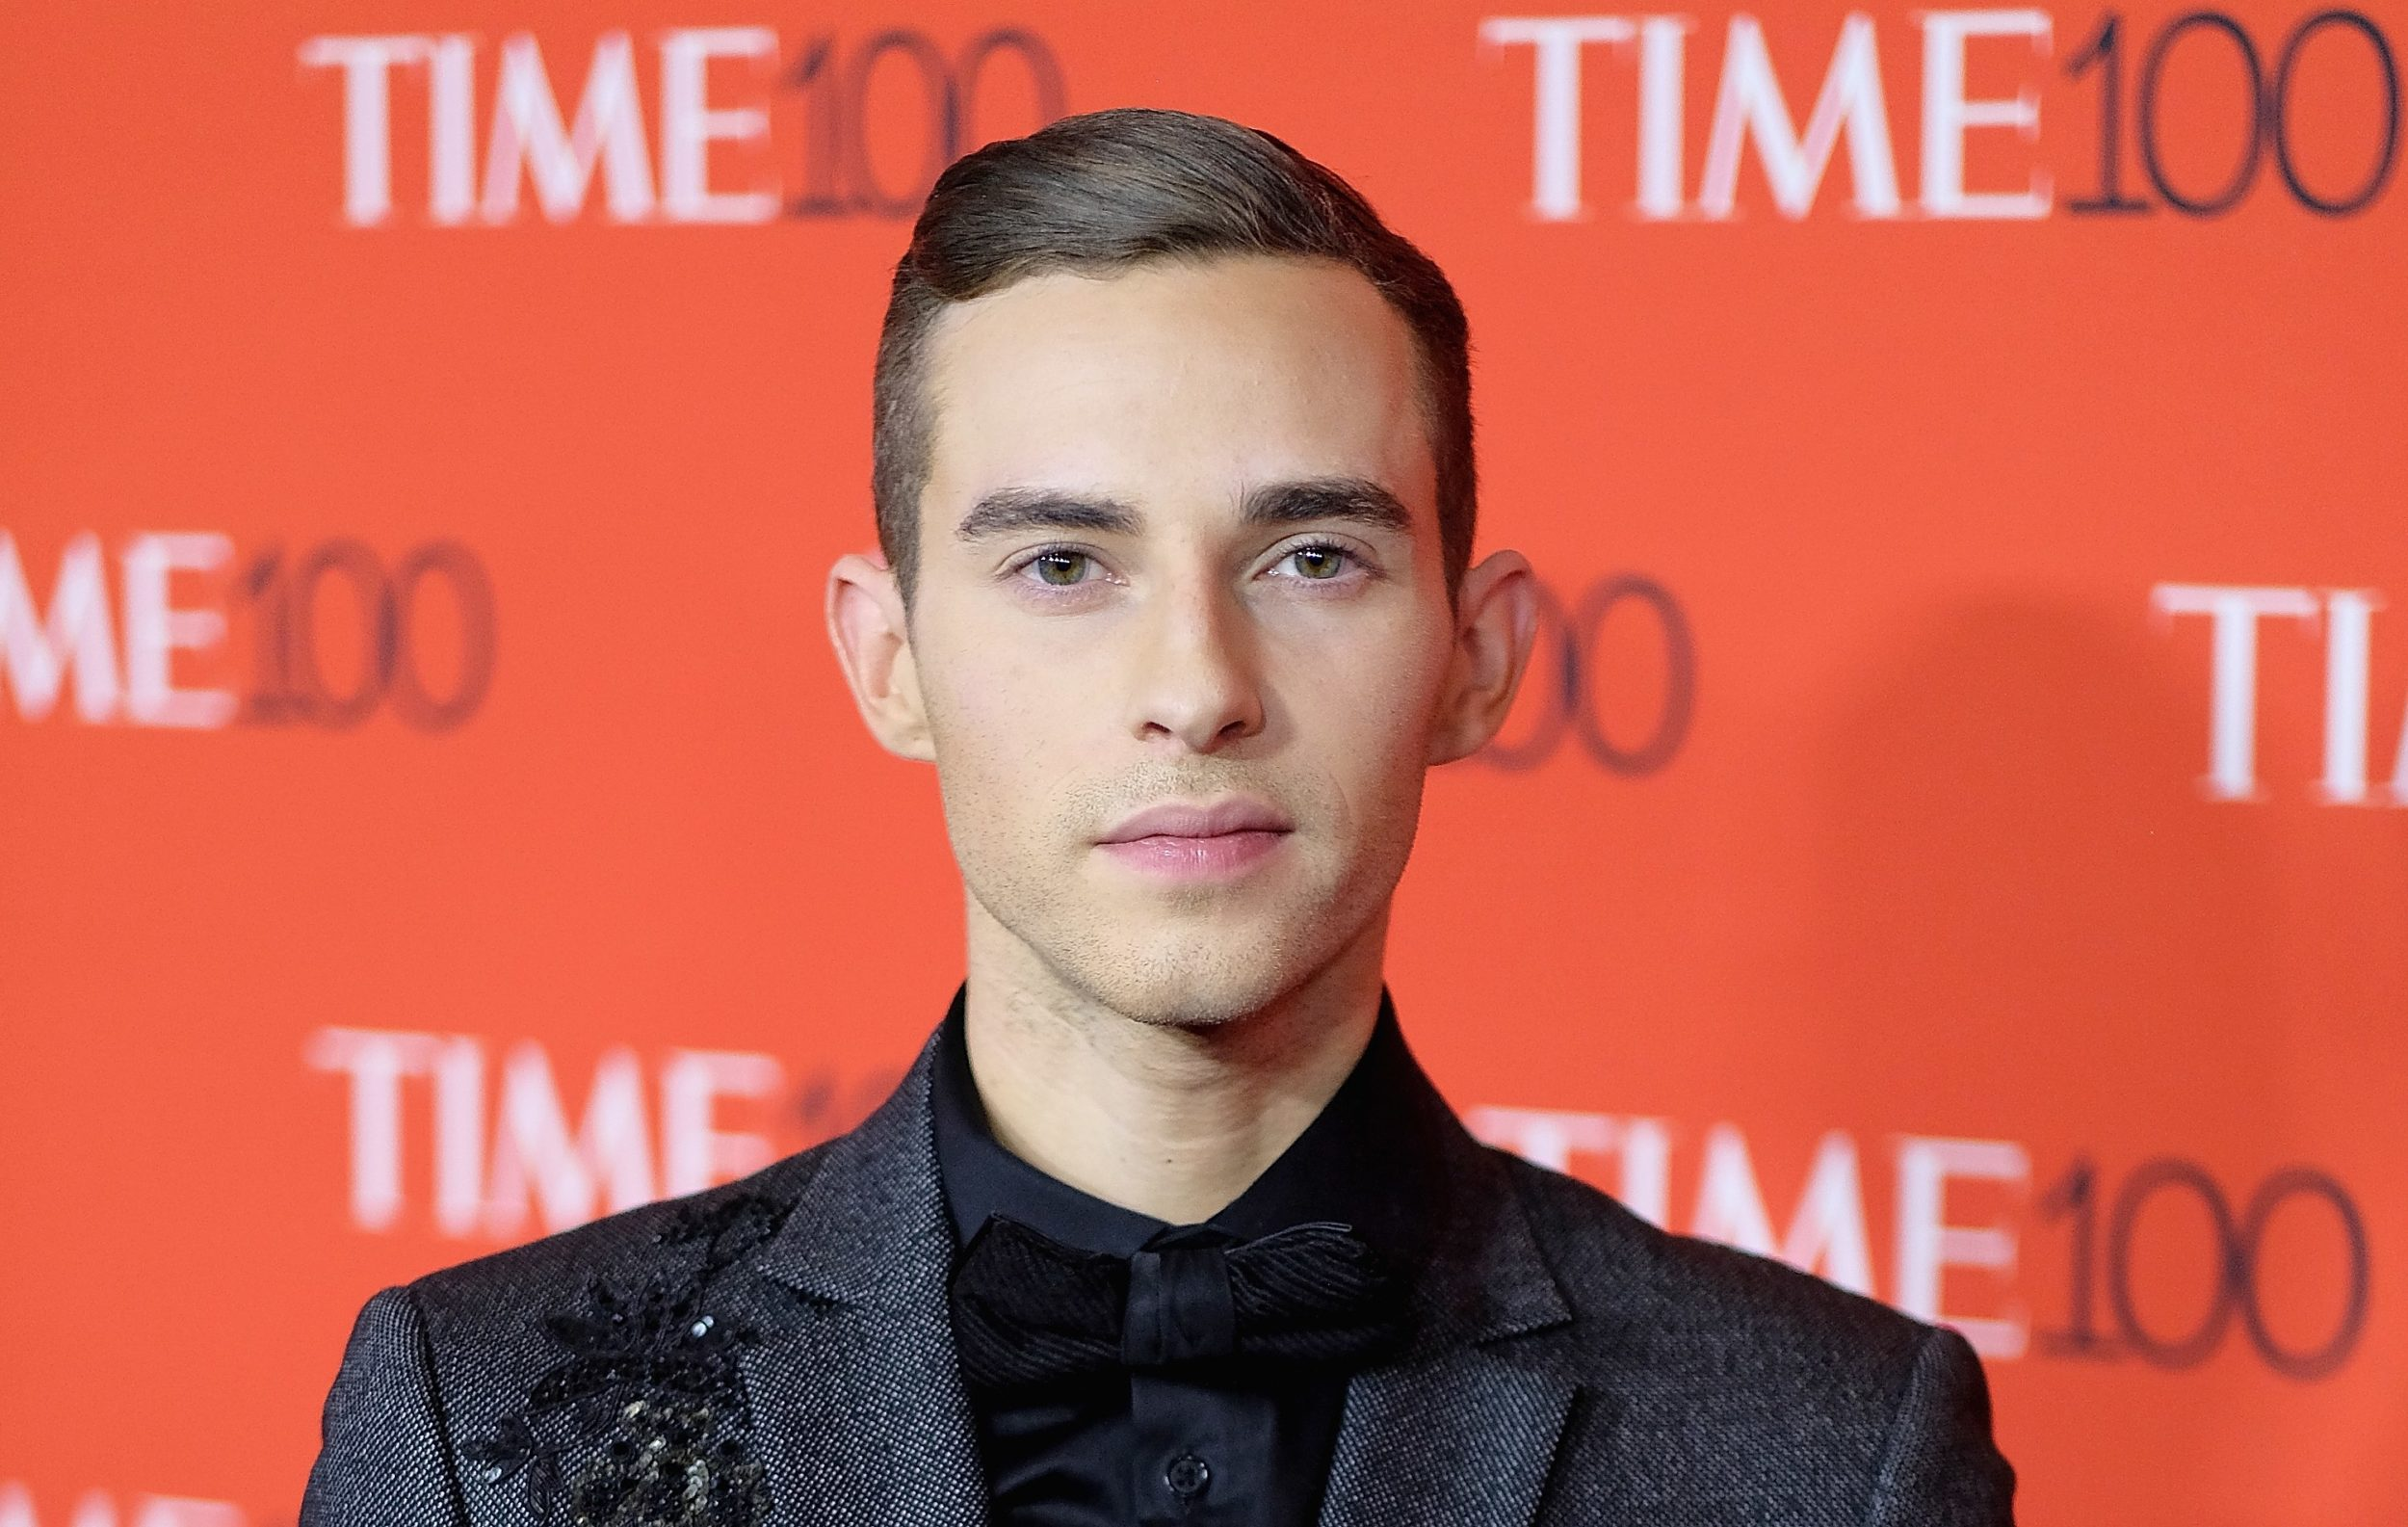 Adam Rippon fires back at Donald Trump after tone-deaf Paralympics comments